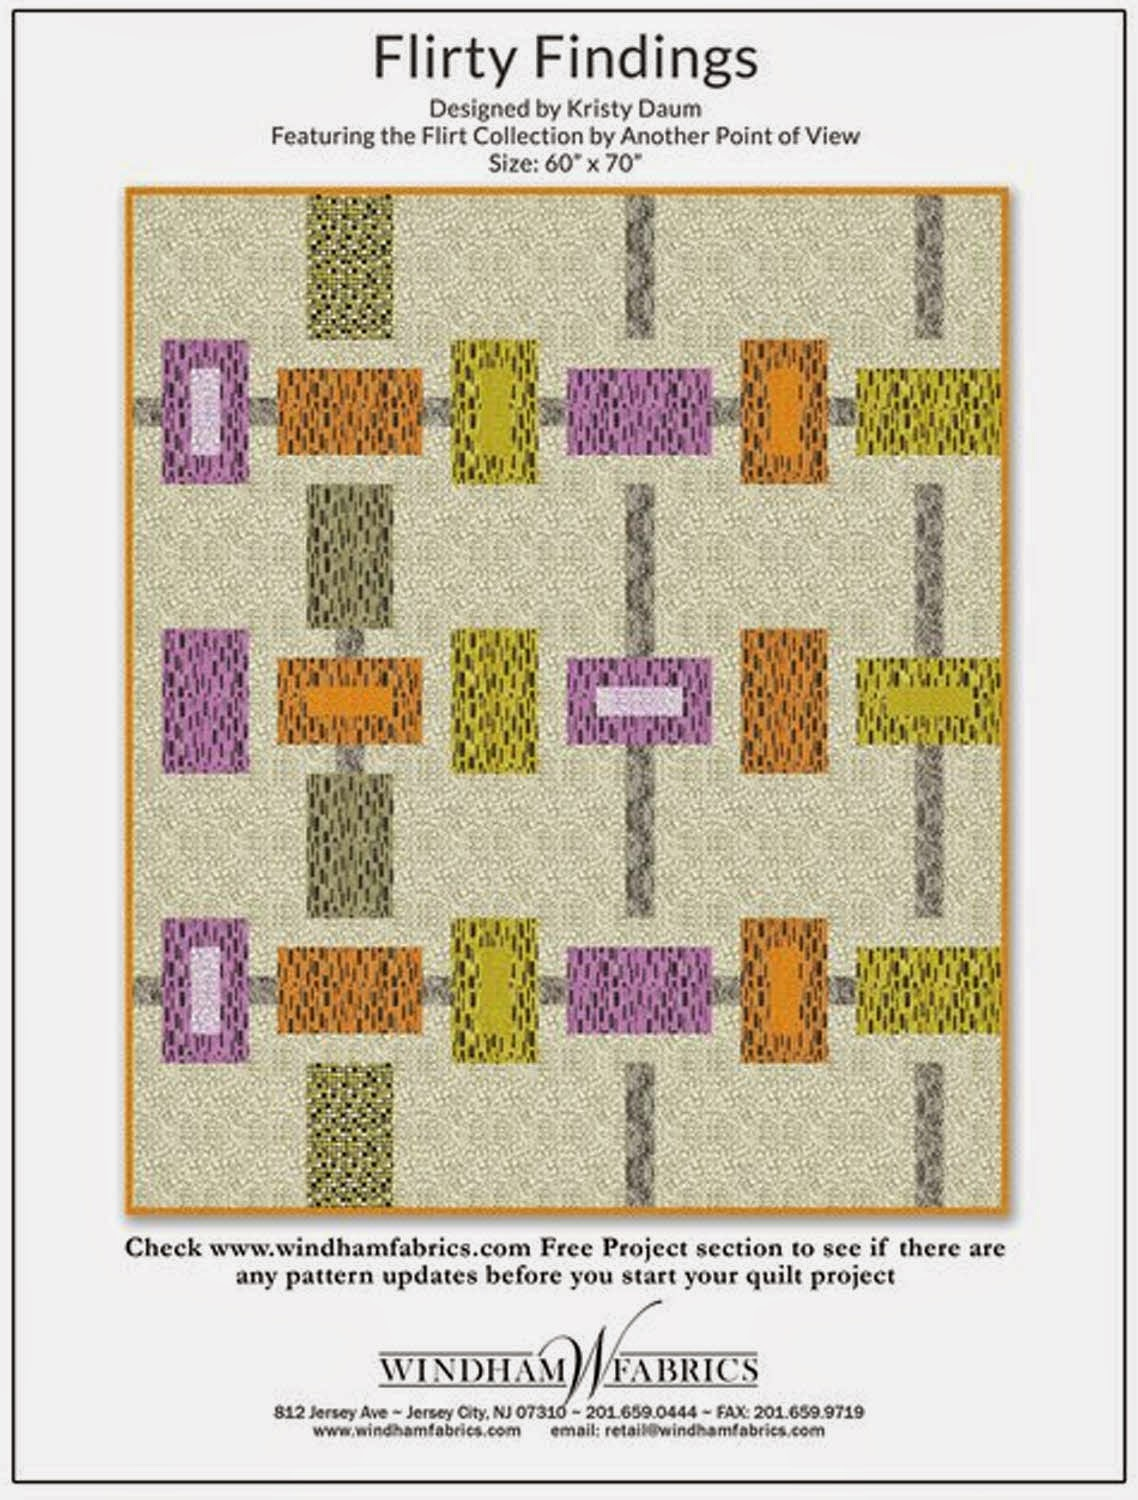 FLIRTY FINDINGS Quilt Pattern // Kristy Daum for Windham Fabrics